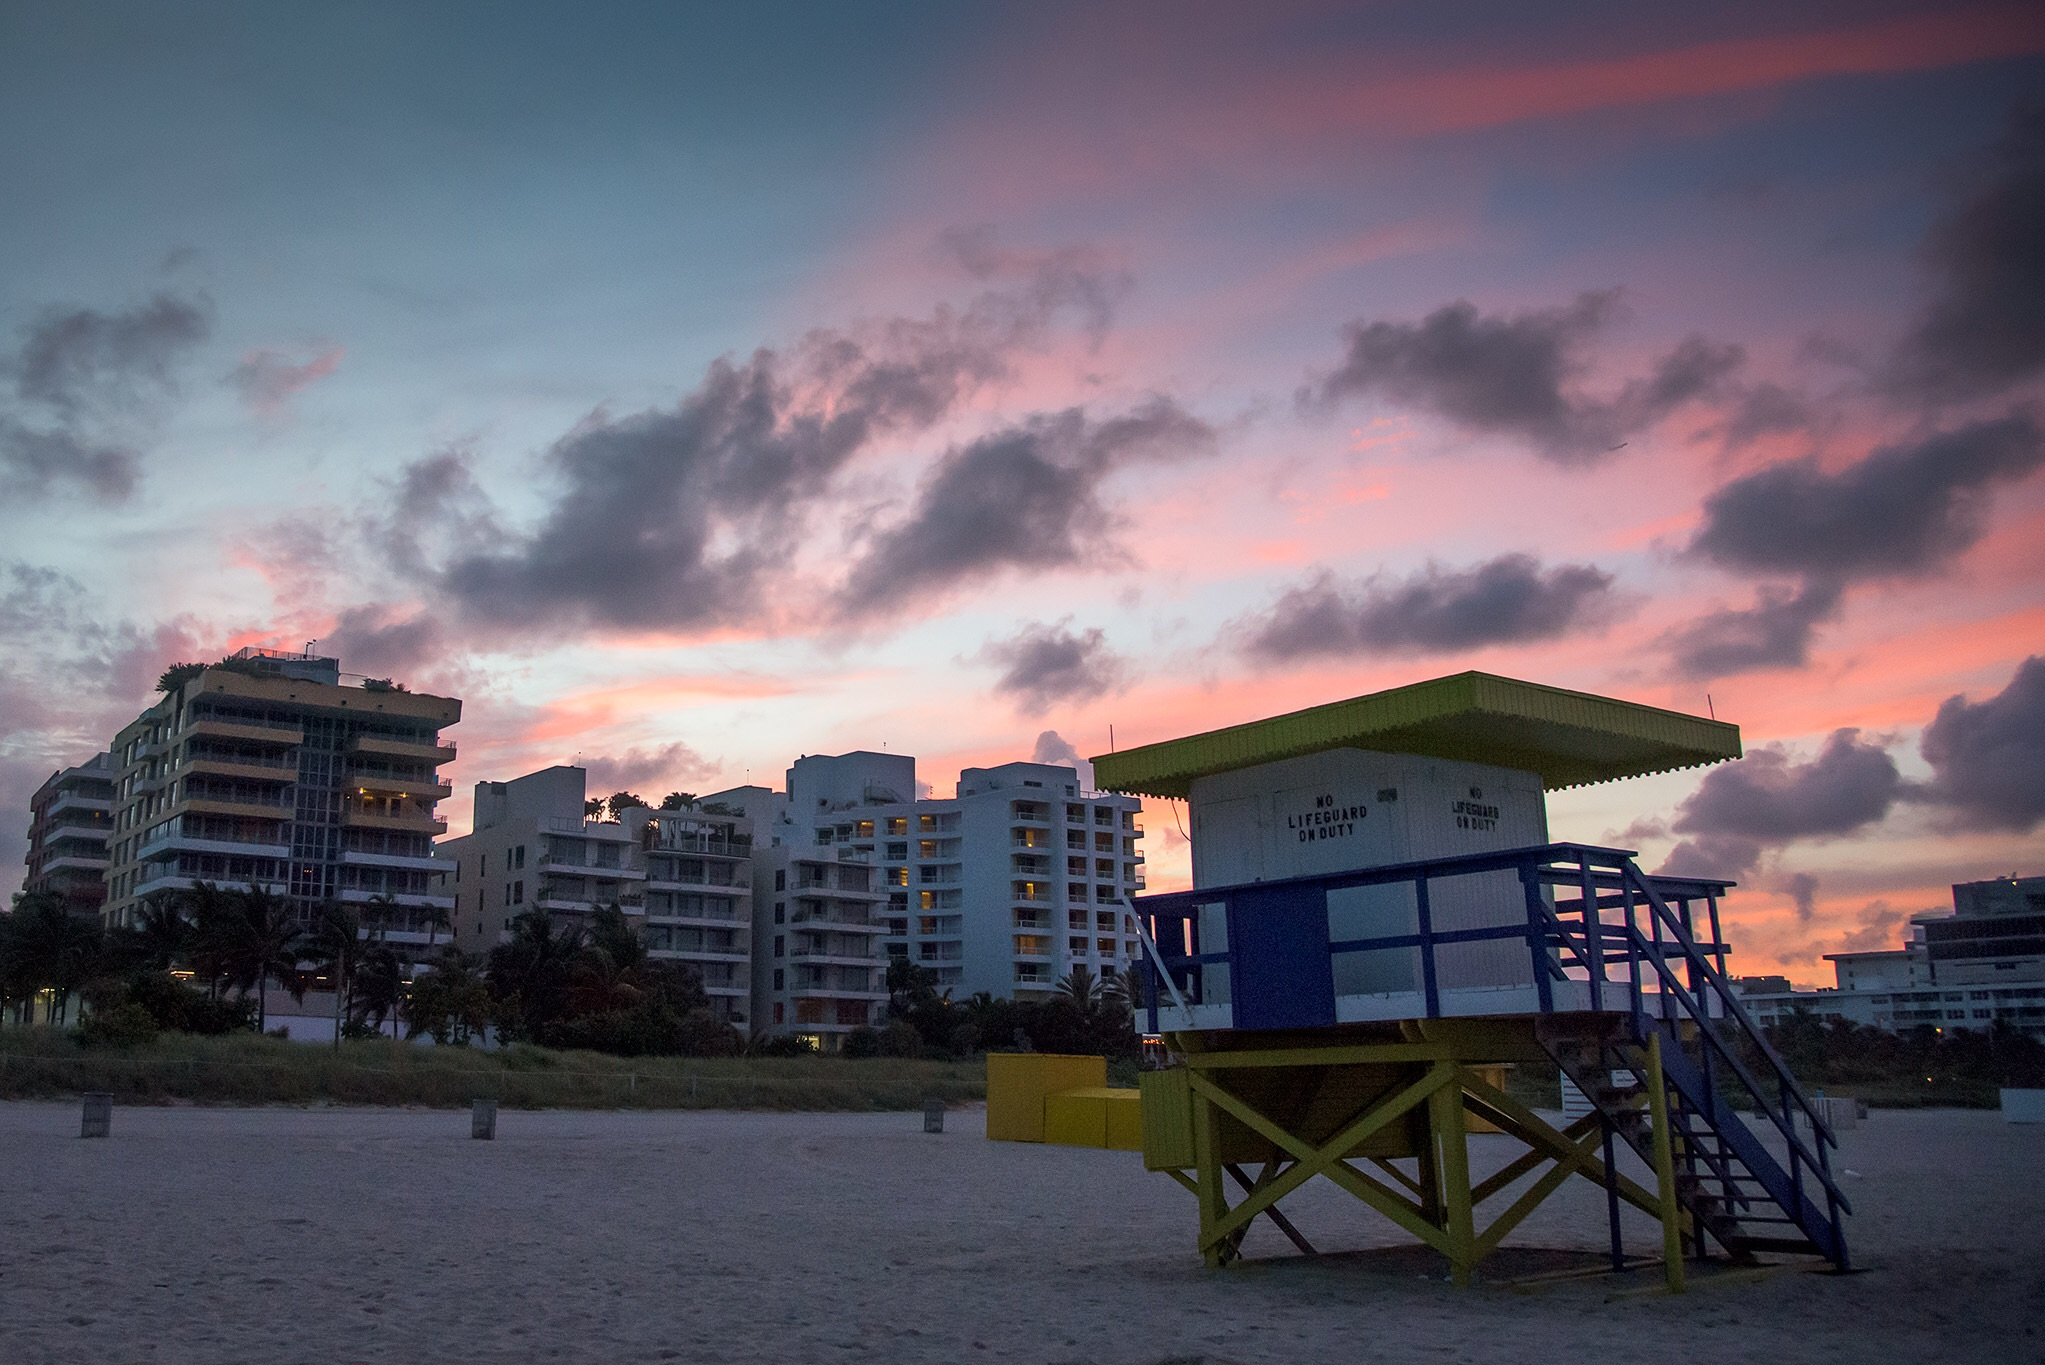 The sky puts on its own colorful display at sunset on South Beach